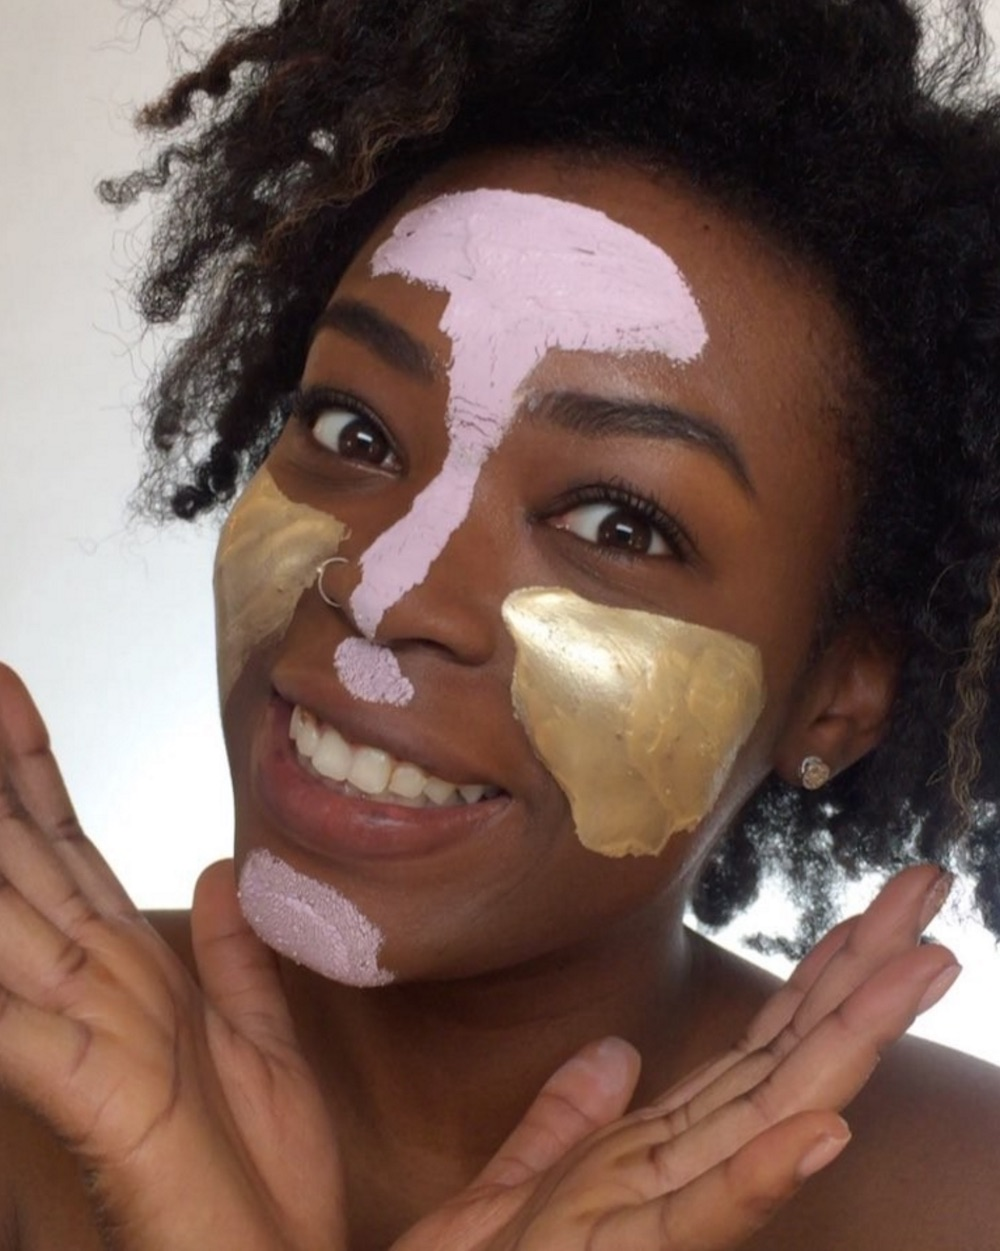 We're going to take so many selfies thanks to Tarte's new Tight and Bright face mask